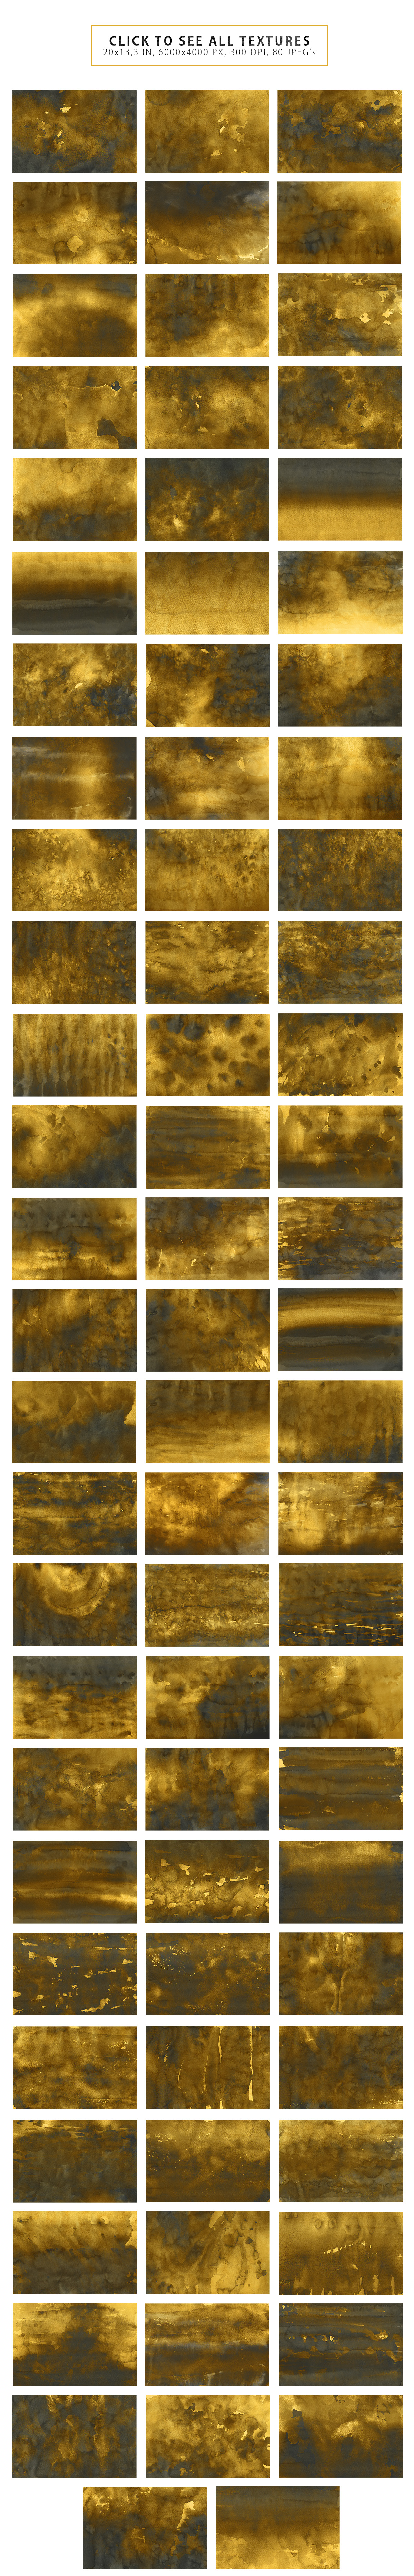 Golden Watercolor & Ink Backgrounds example image 2